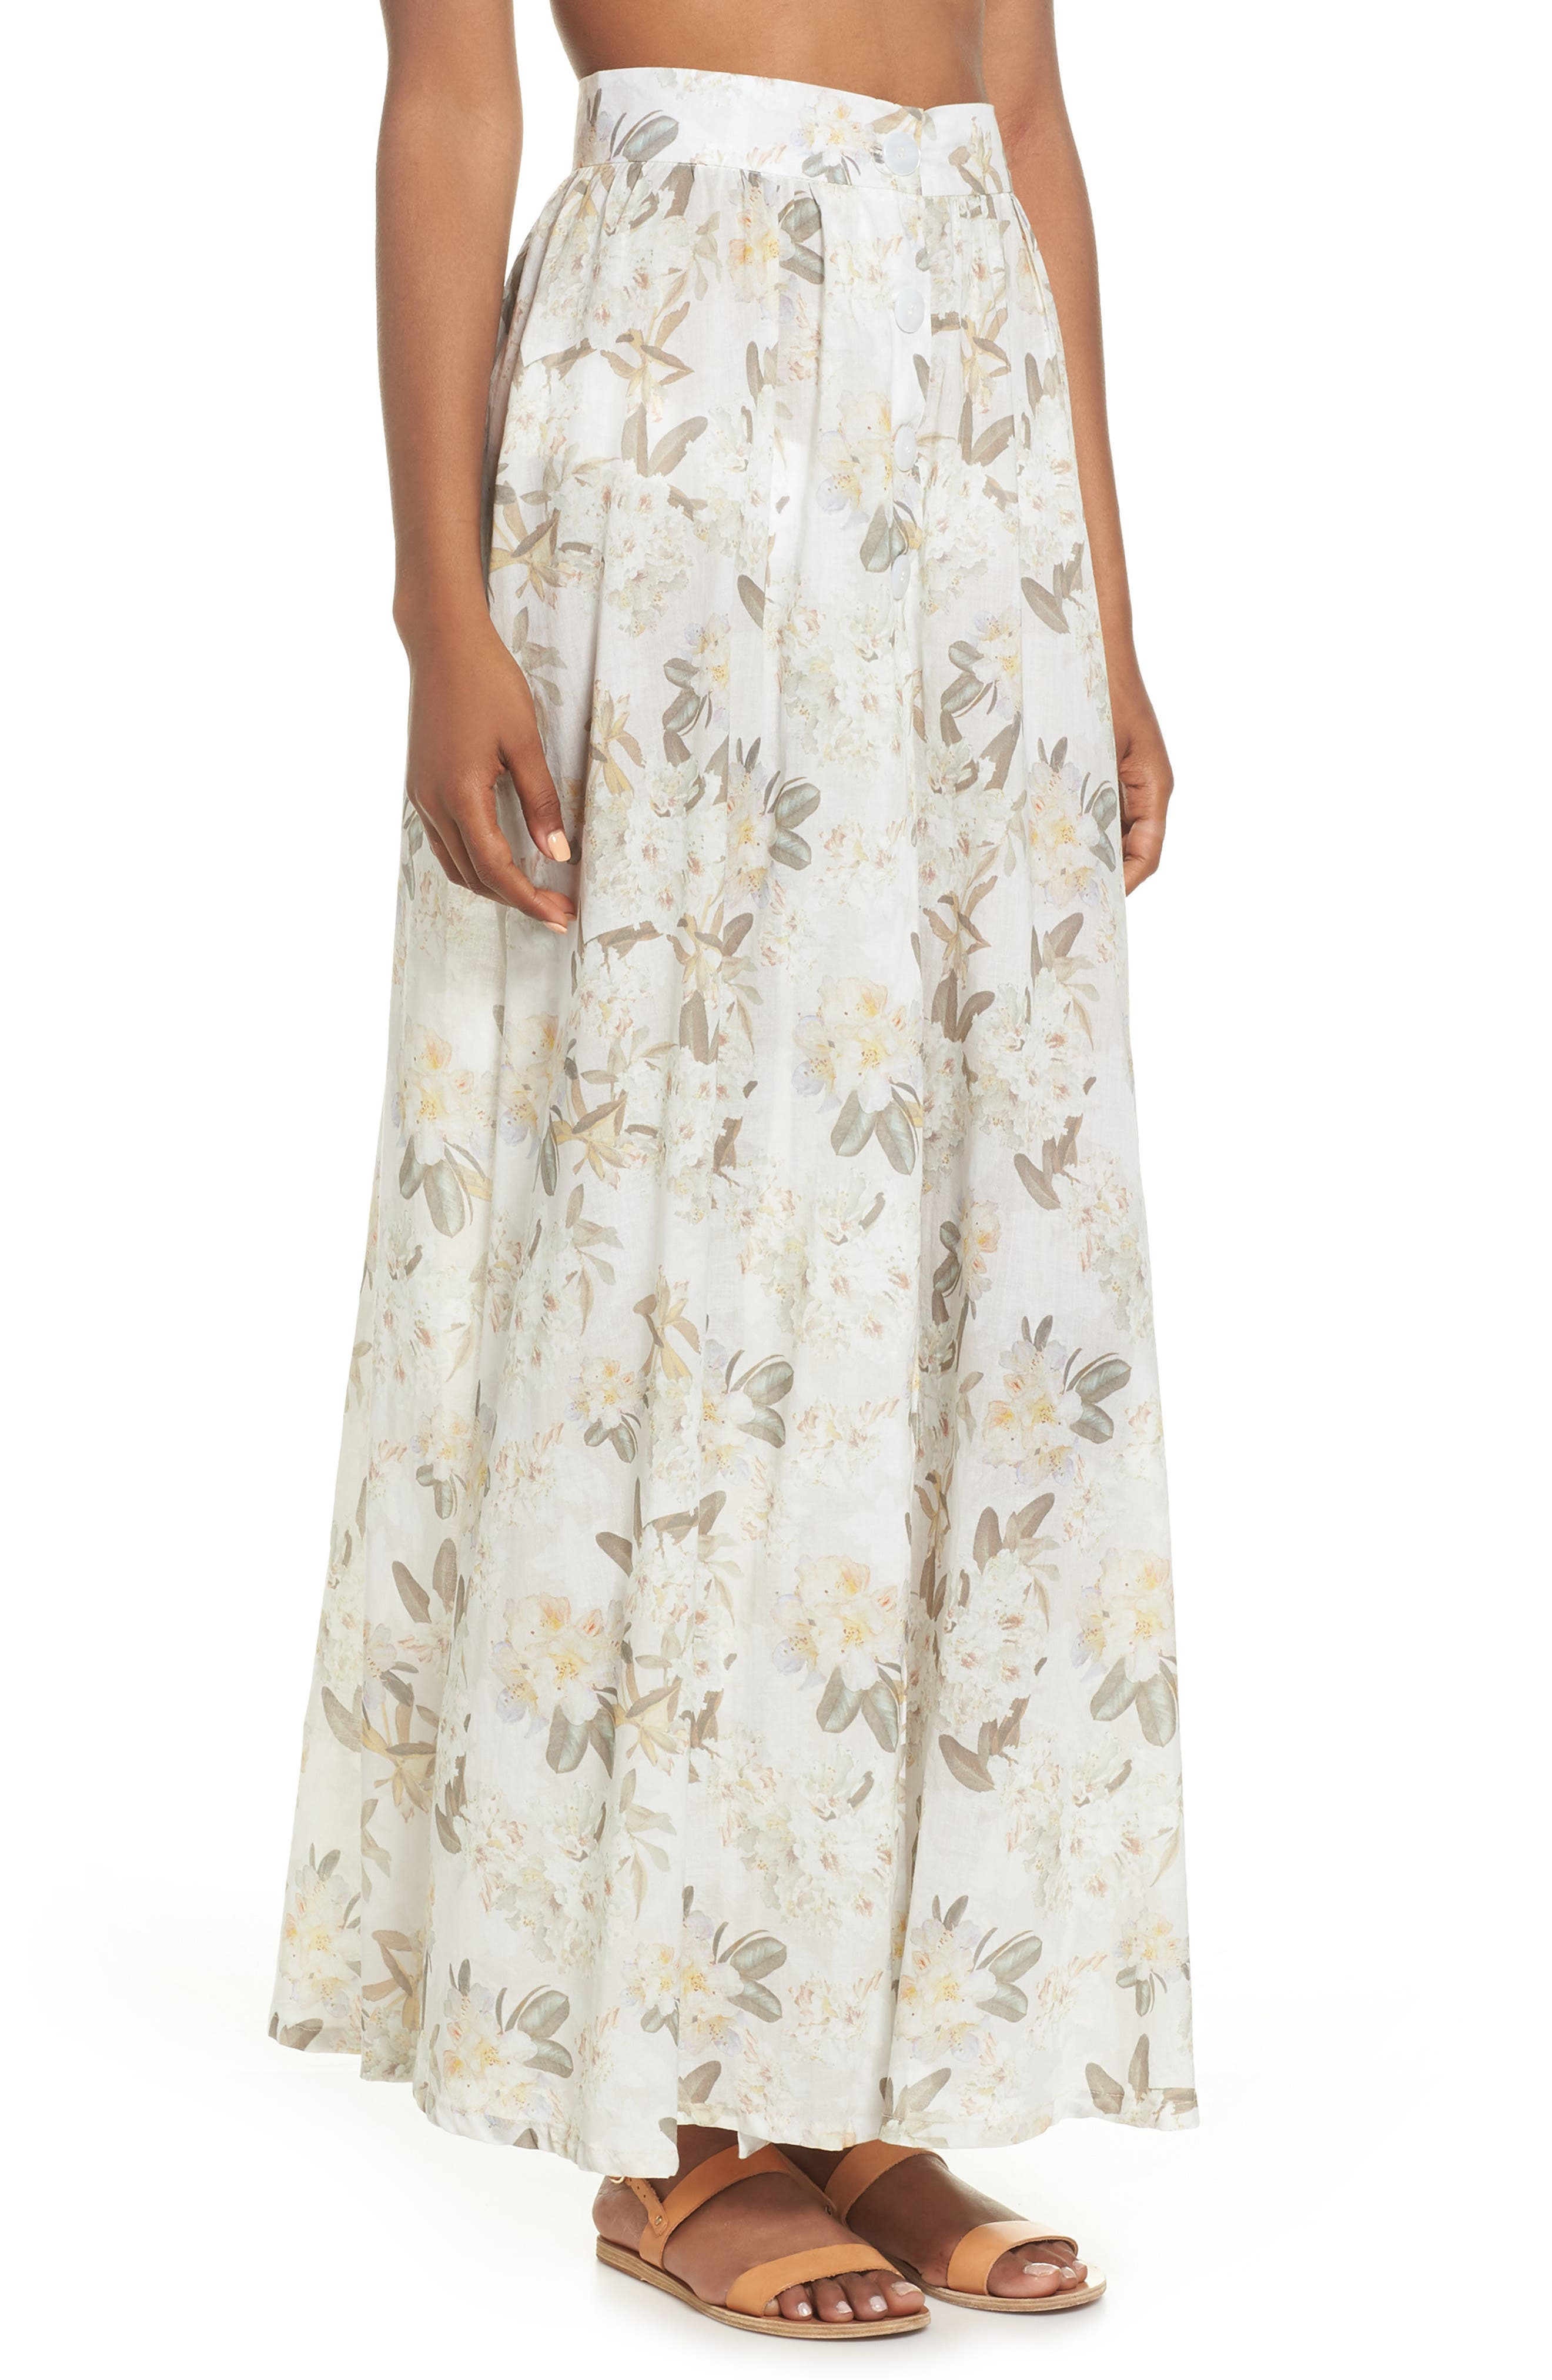 Edith Cover-Up Maxi Skirt,                             Alternate thumbnail 3, color,                             100